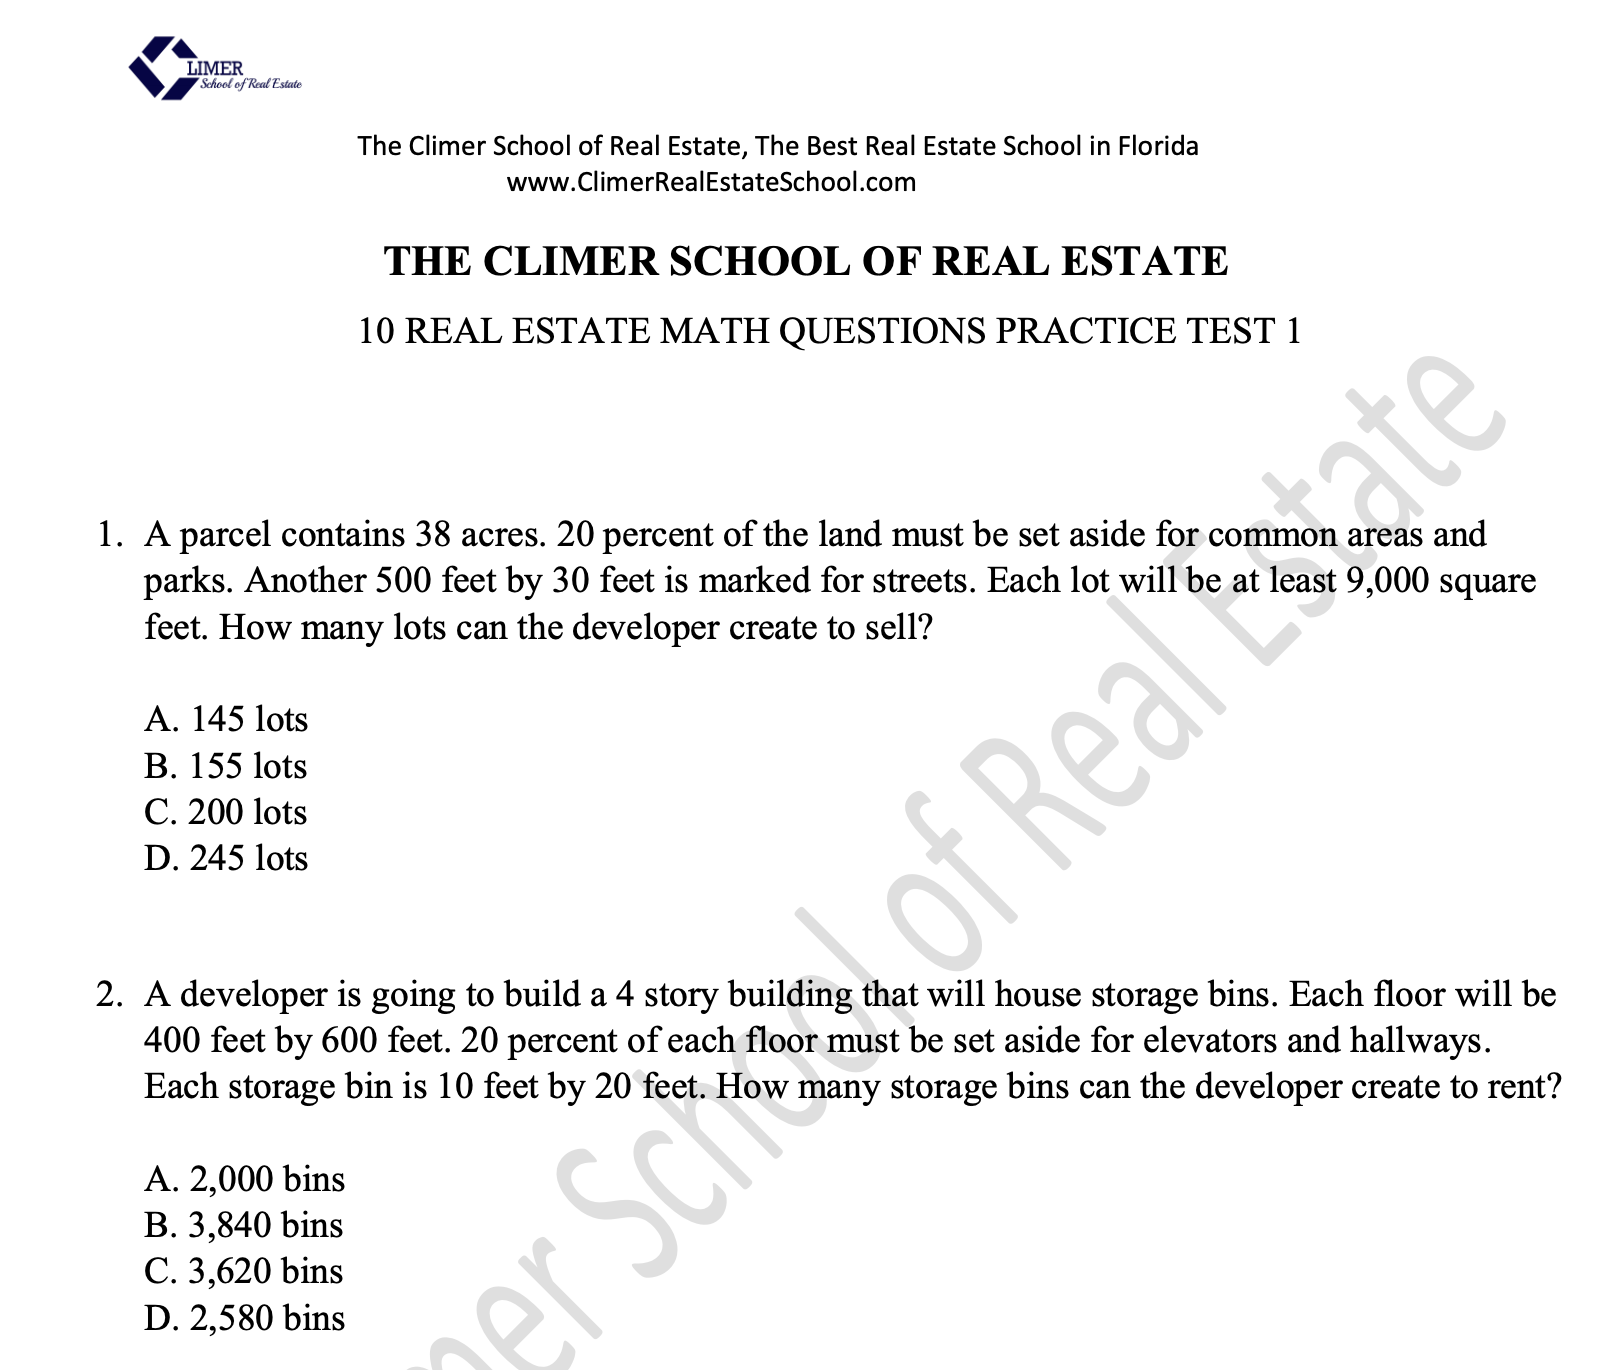 Real Estate Practice Exam courtesy of Climer School of Real Estate